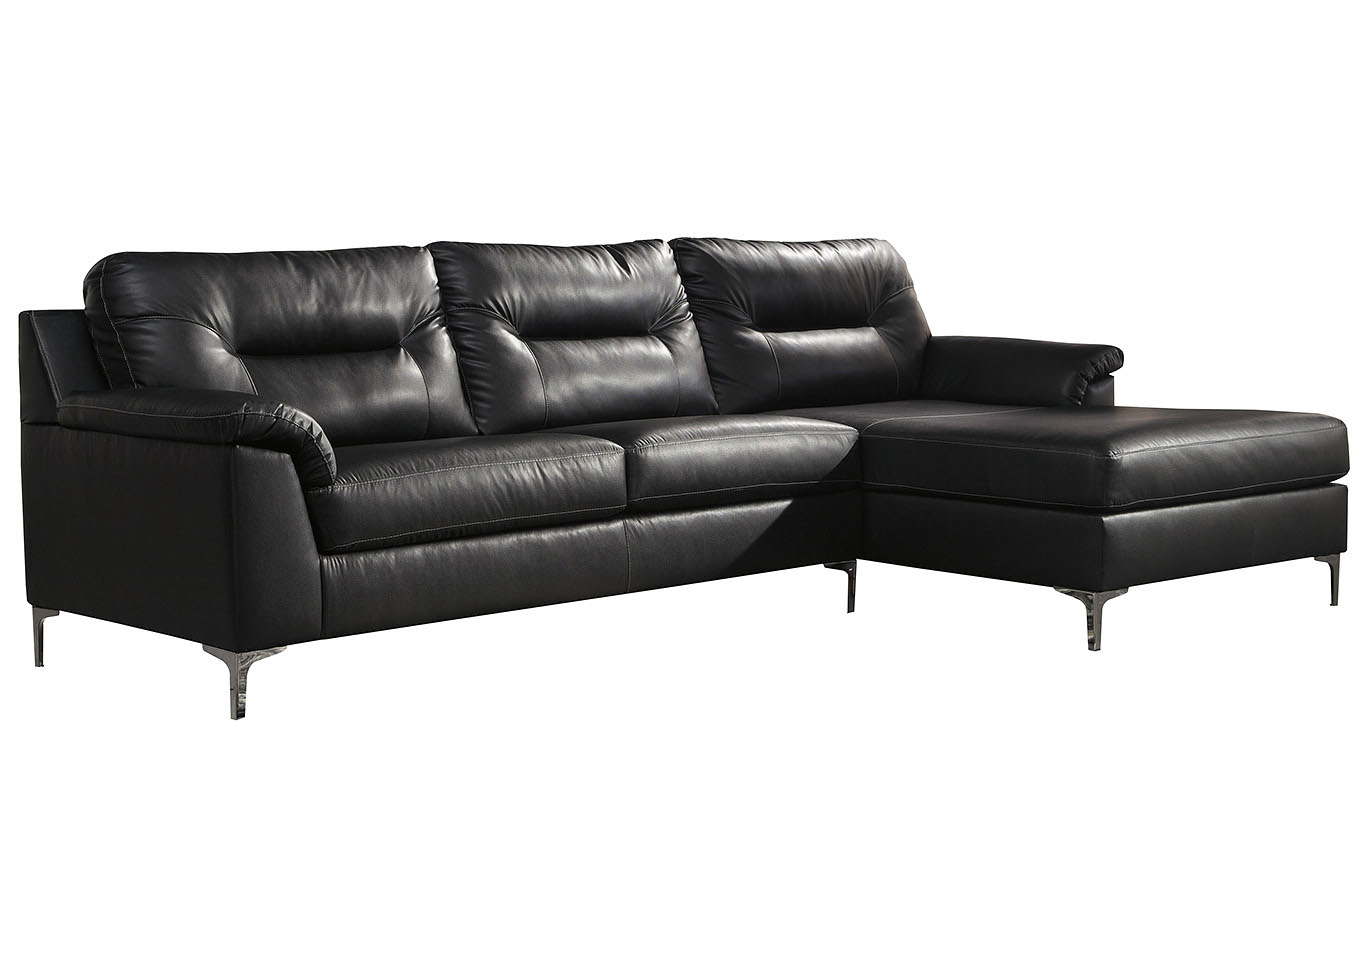 Tensas Black Right Arm Facing Sectional,Signature Design By Ashley